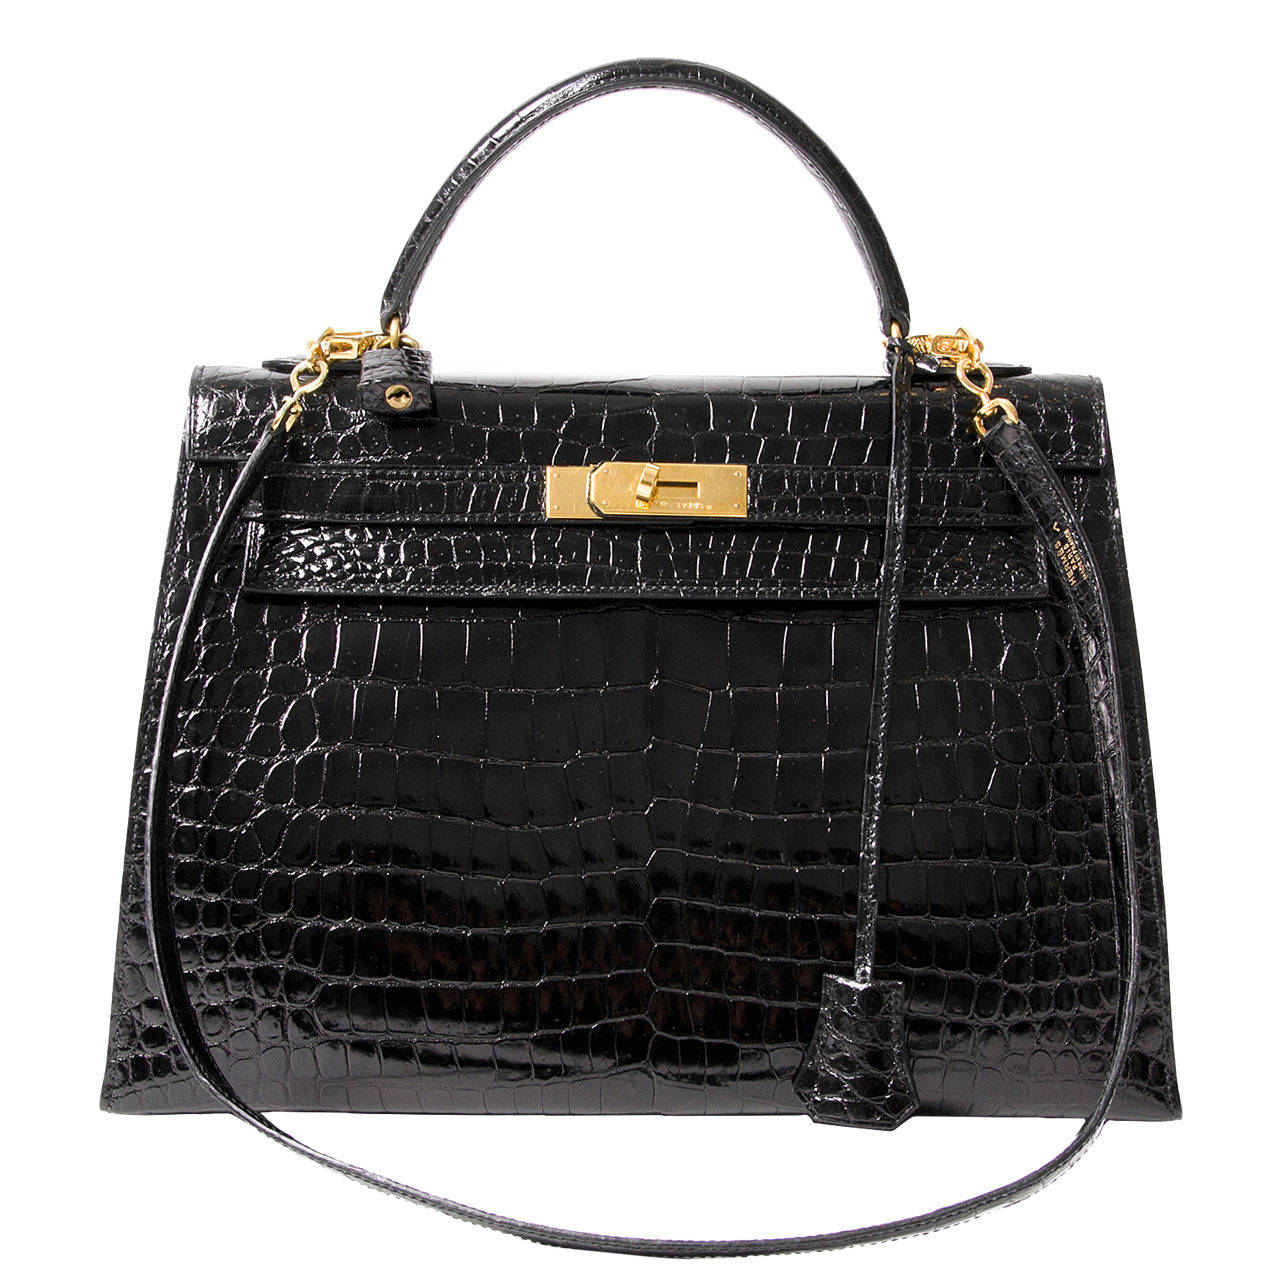 63ed0f5347 Hermes Kelly Black Shiny Porosus Crocodile GHW at 1stdibs